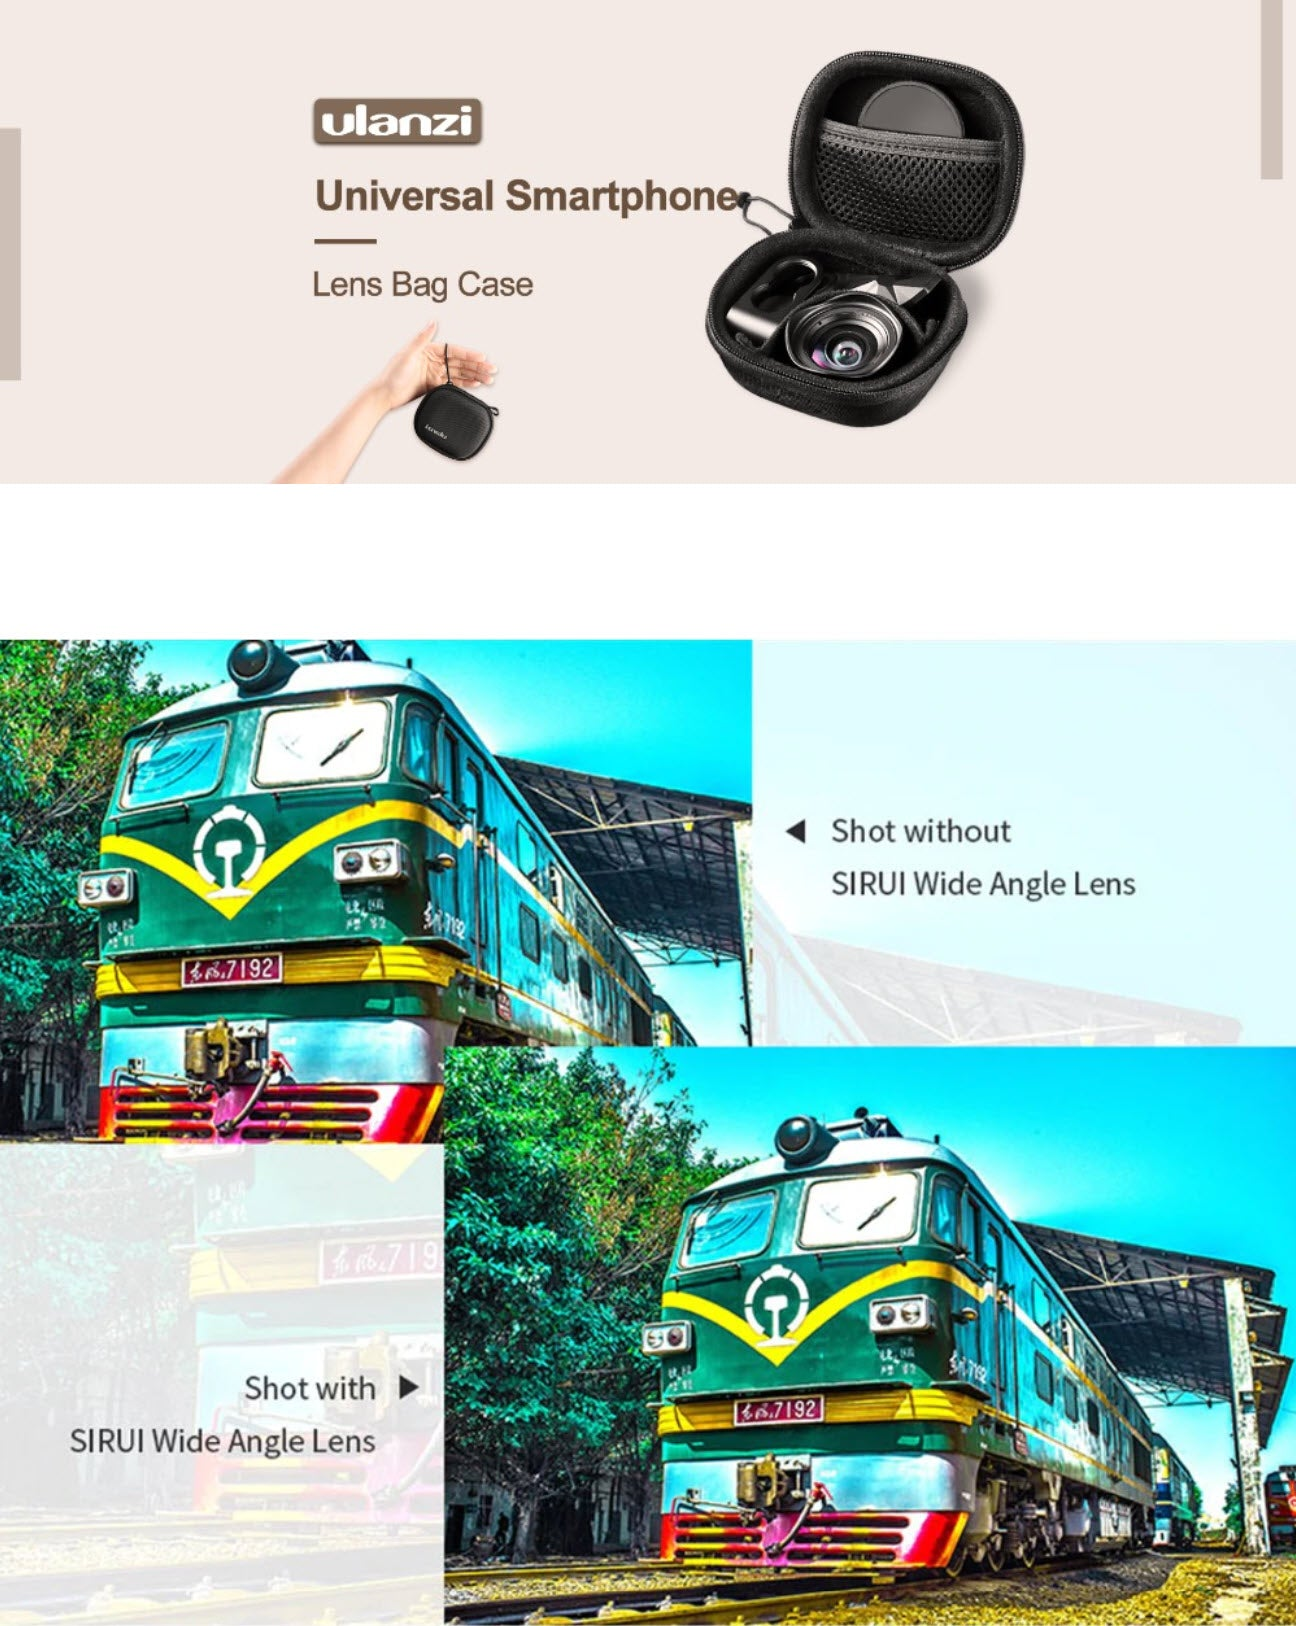 Wide Angle 10X Macro Phone Lens Bag Case Shot Without and With Sirui Wide Shot Lens